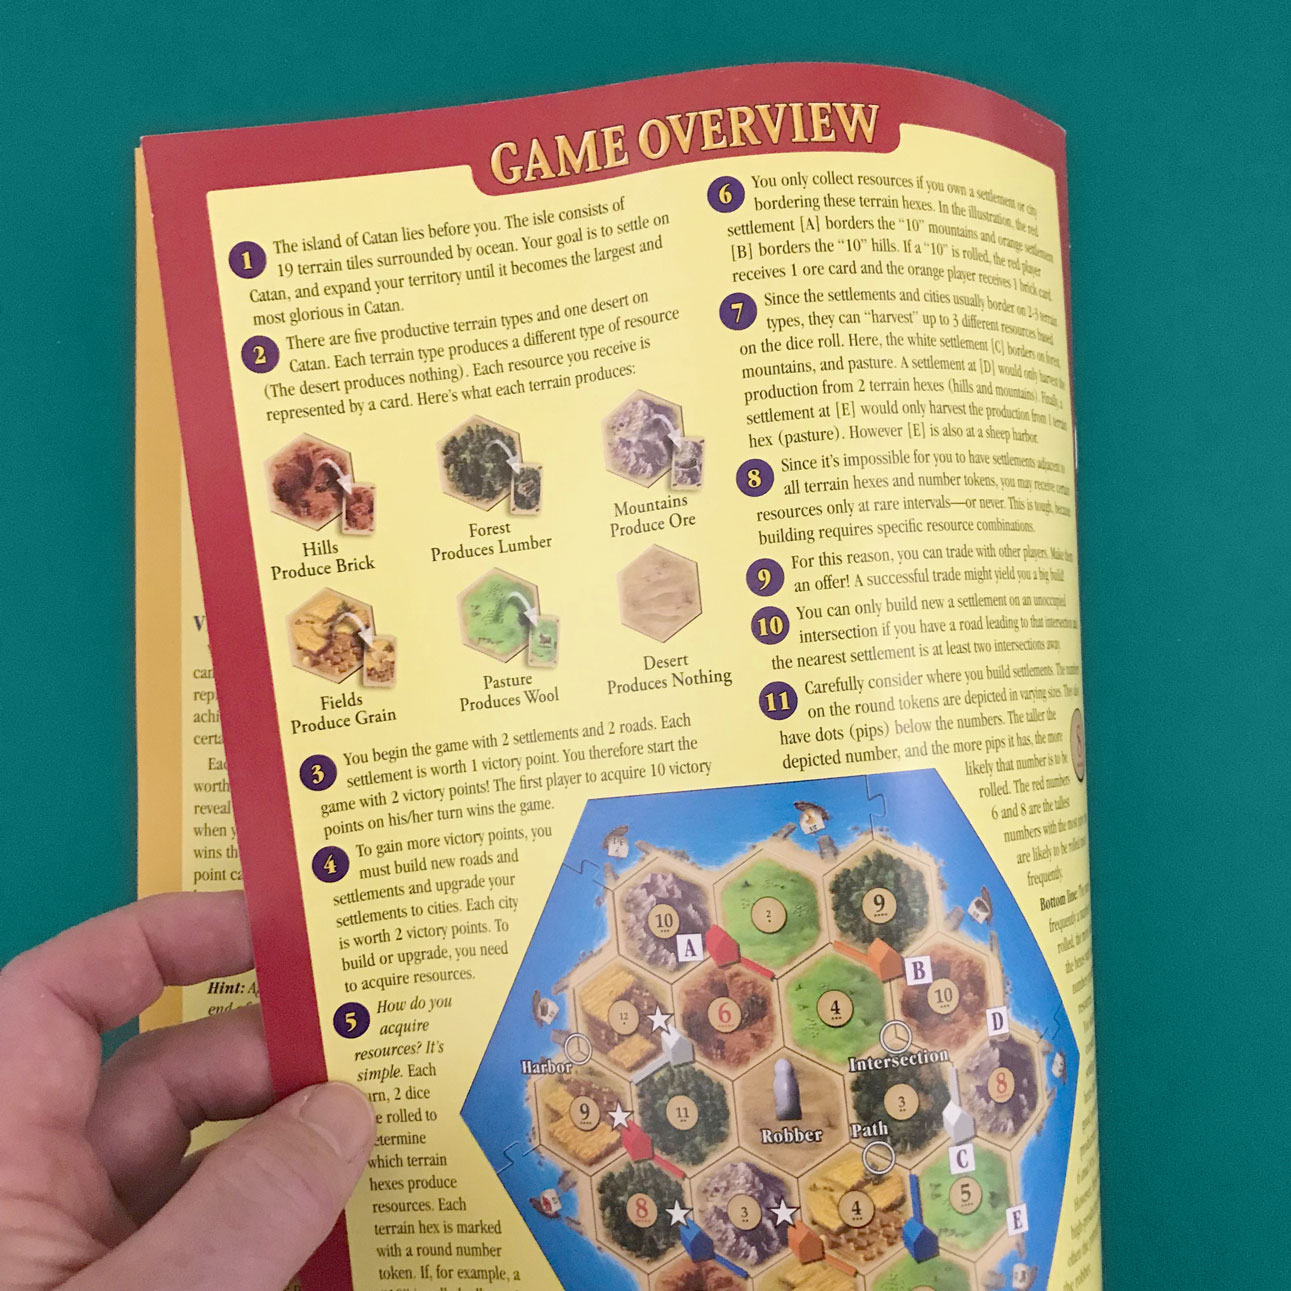 settlers of catan game overview